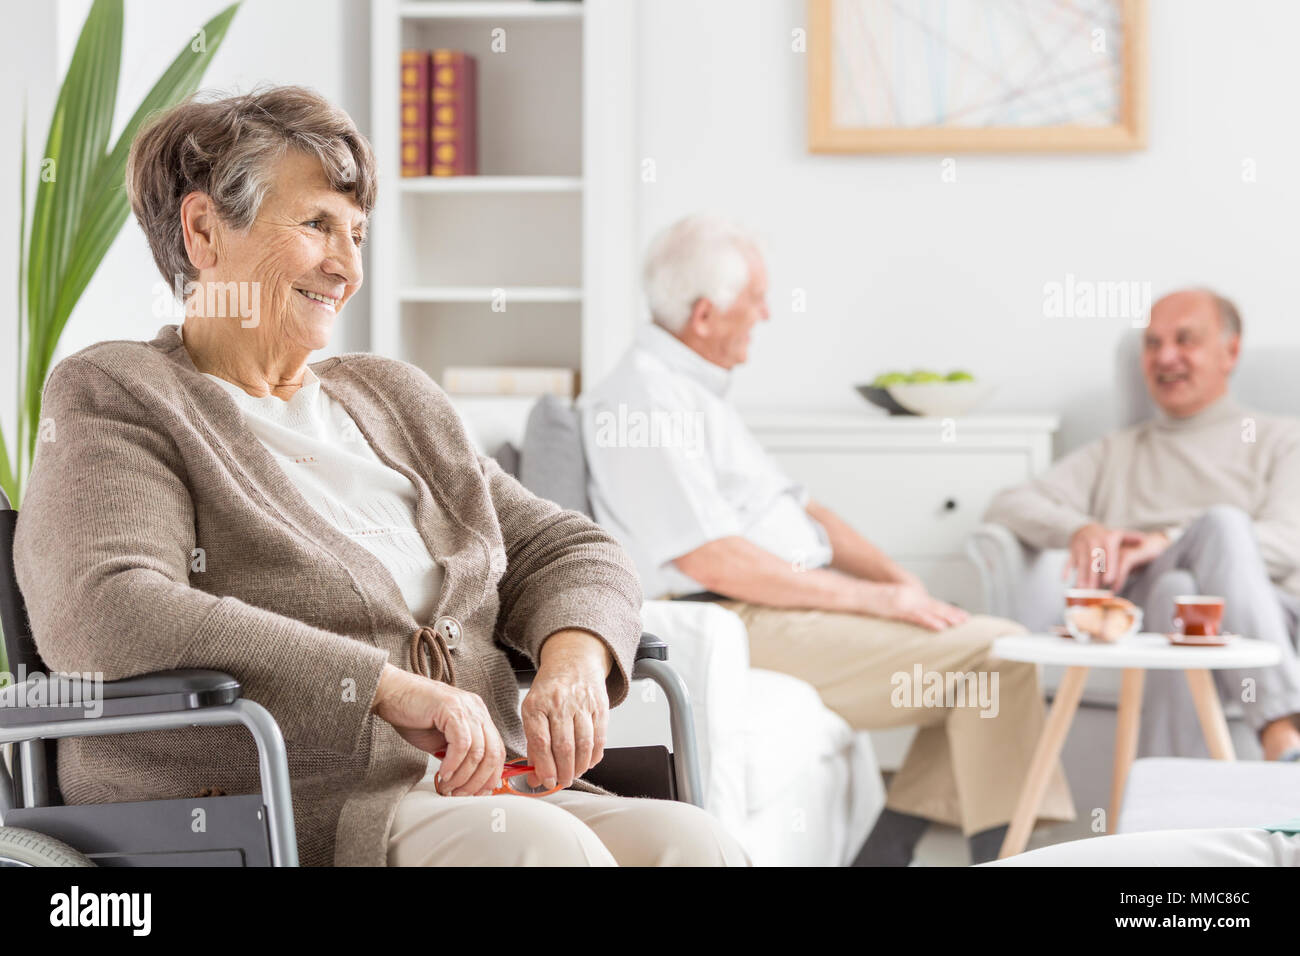 Elders Spending Time Together At Nursing Home Stock Photo Alamy